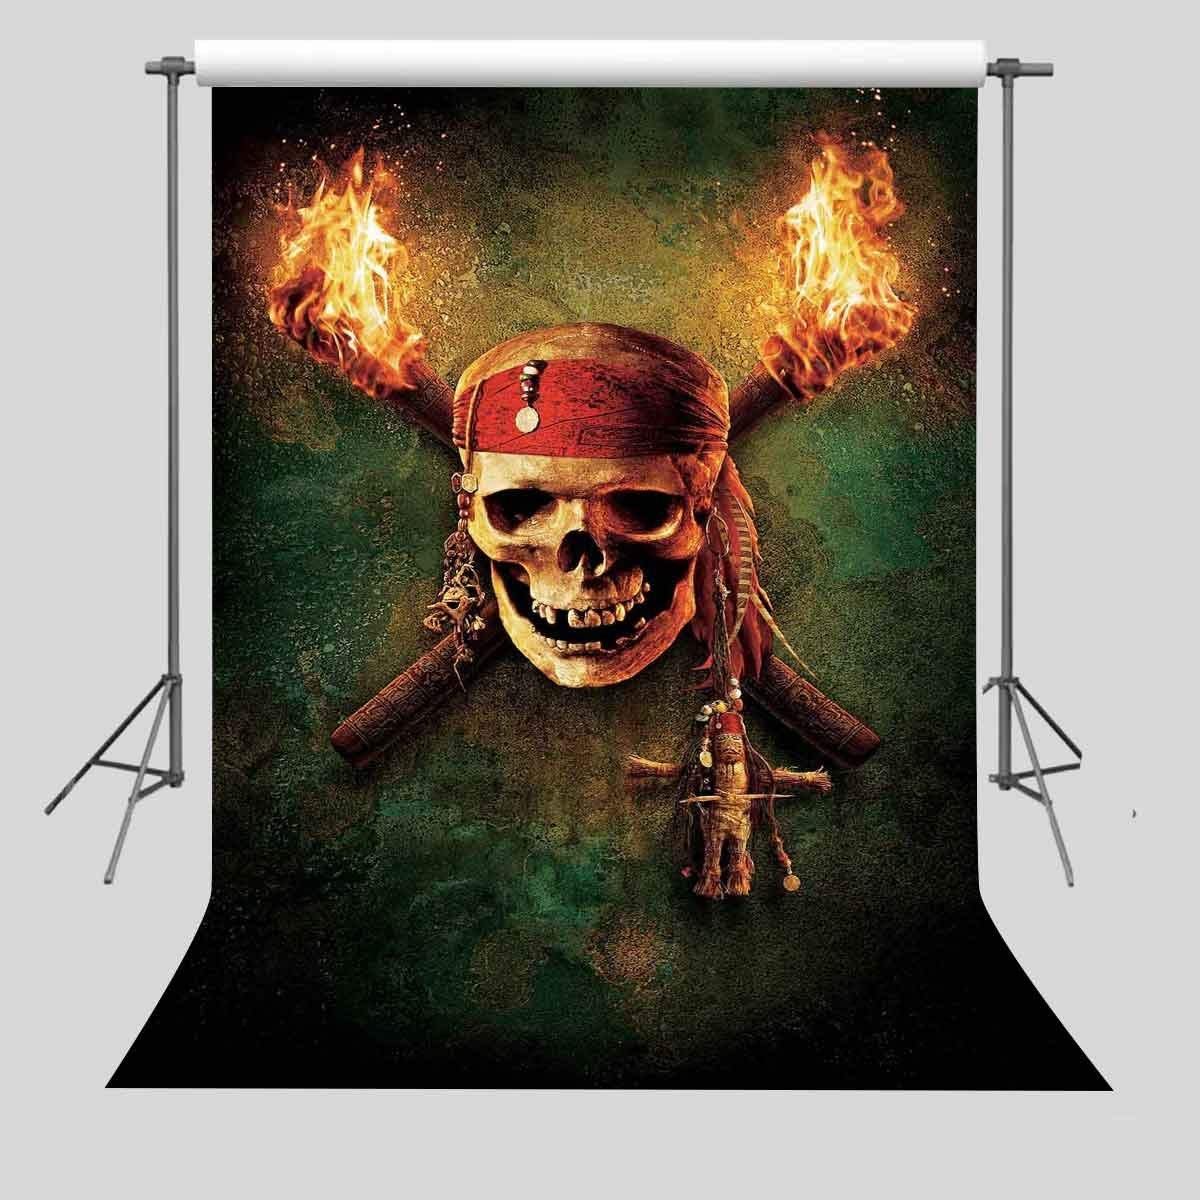 FUERMOR Background 5x7ft Pirate Skull Photography Backdrop Photo Props Photography Backdrops GEFU452